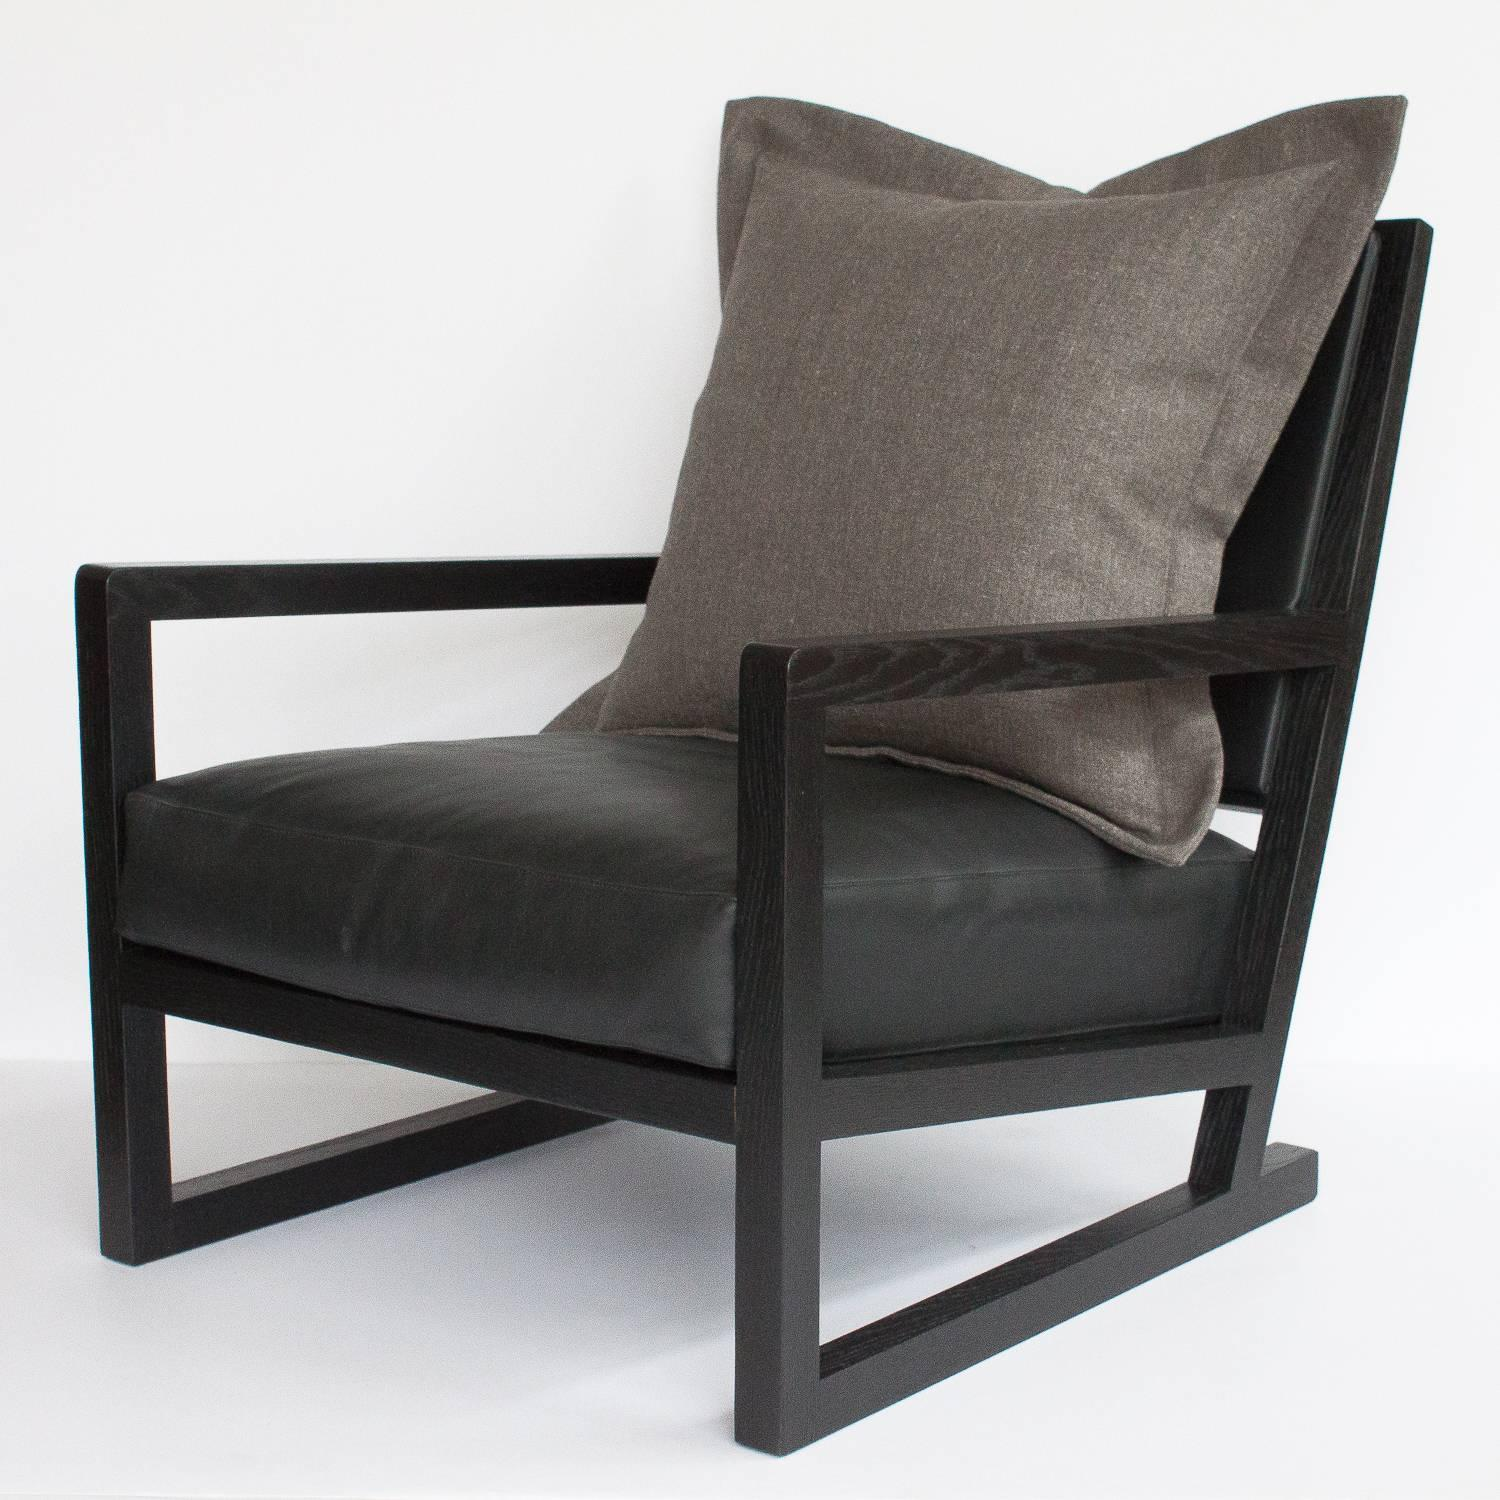 antonio citterio clio lounge chair for b b italia maxalto for sale at 1stdibs. Black Bedroom Furniture Sets. Home Design Ideas